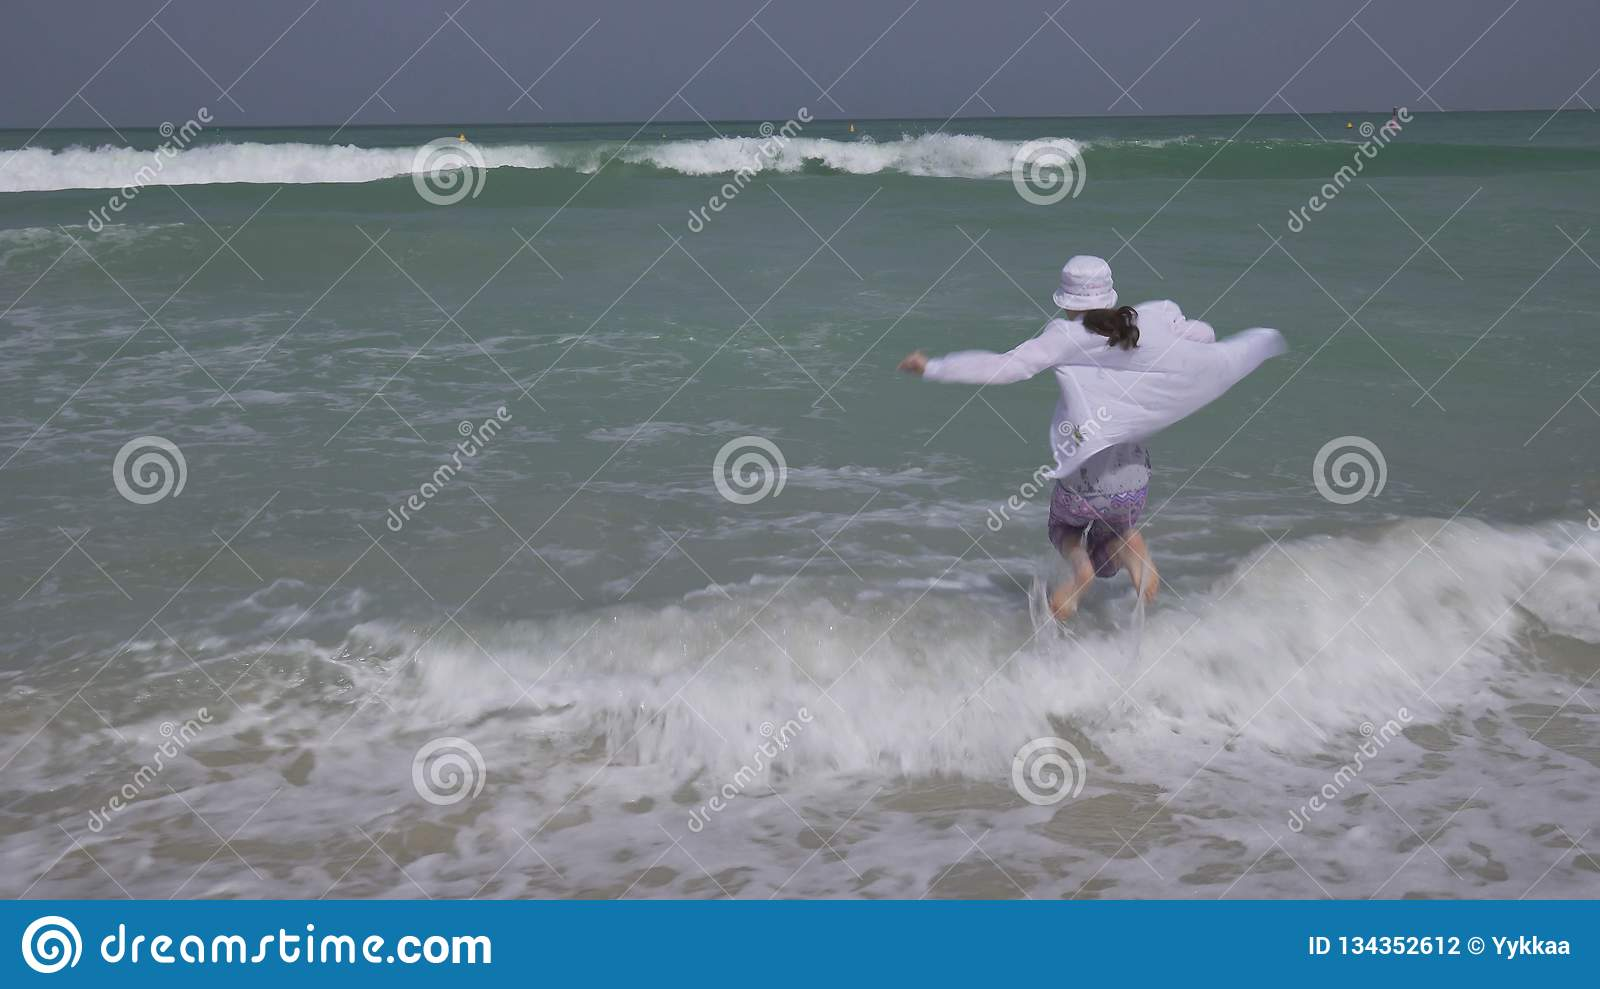 Teenage Girl In Clothes Joyfully Jumping In The Waves Of